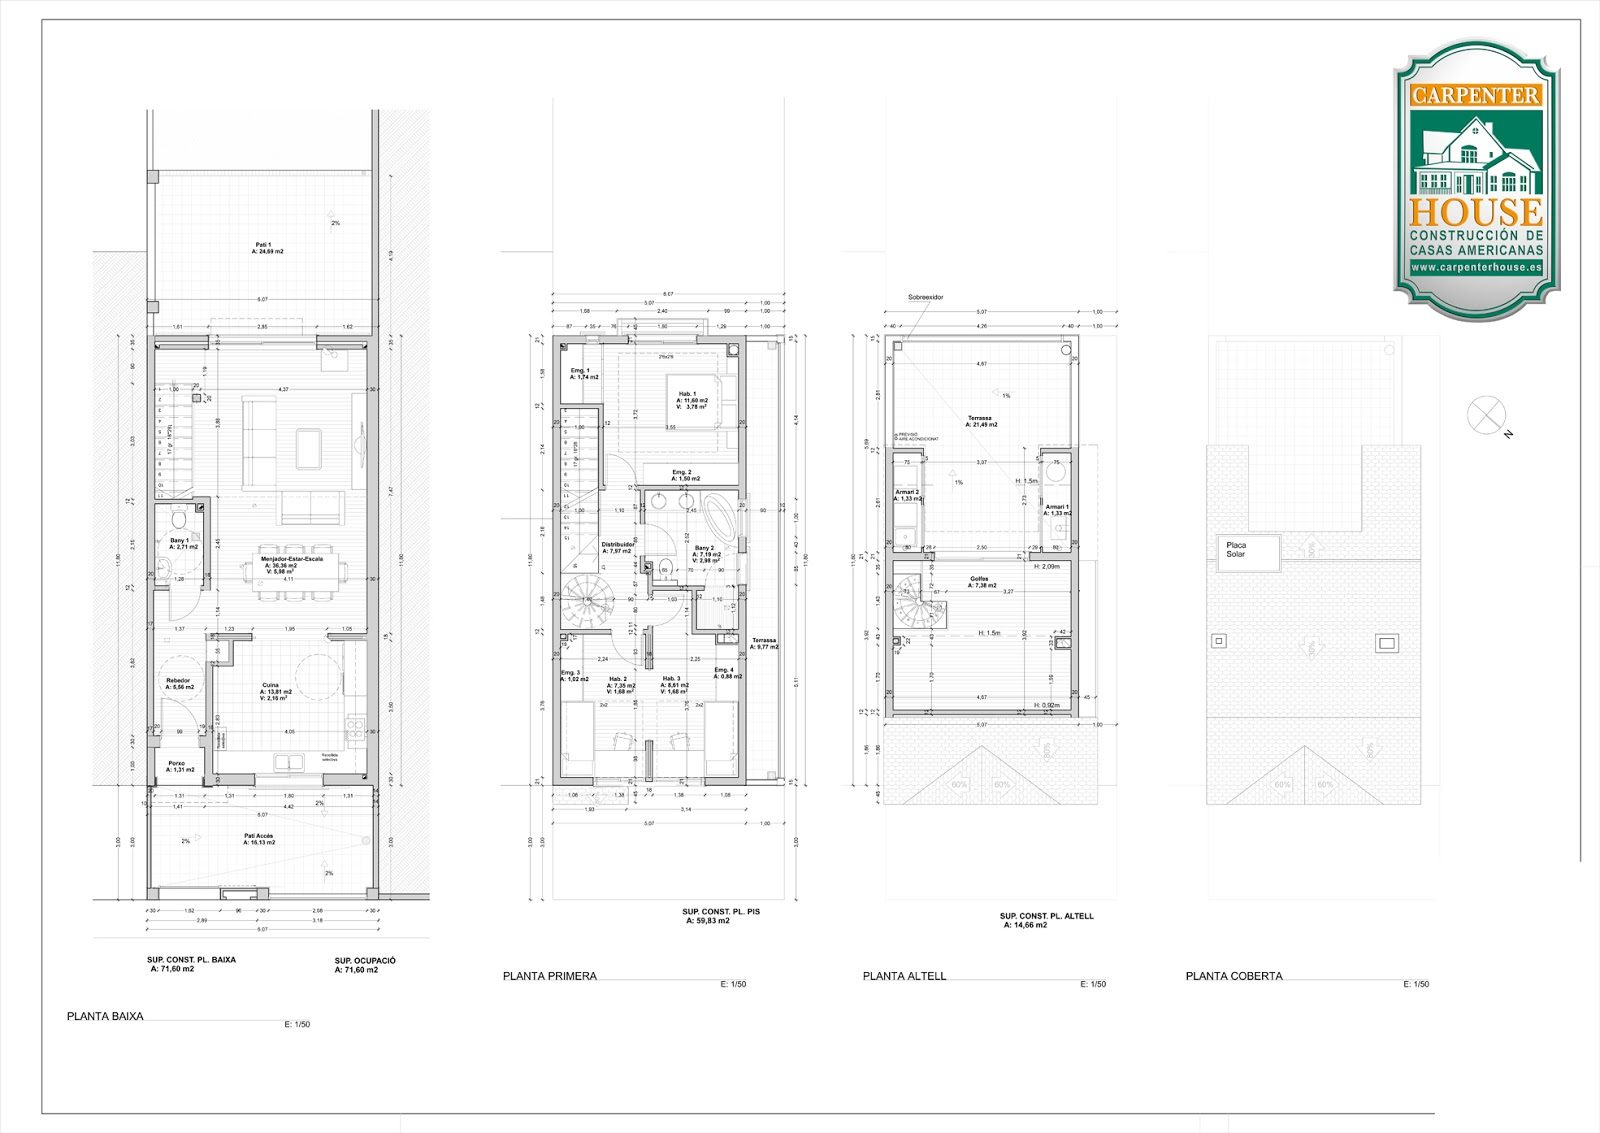 Carpenter House Diagrams